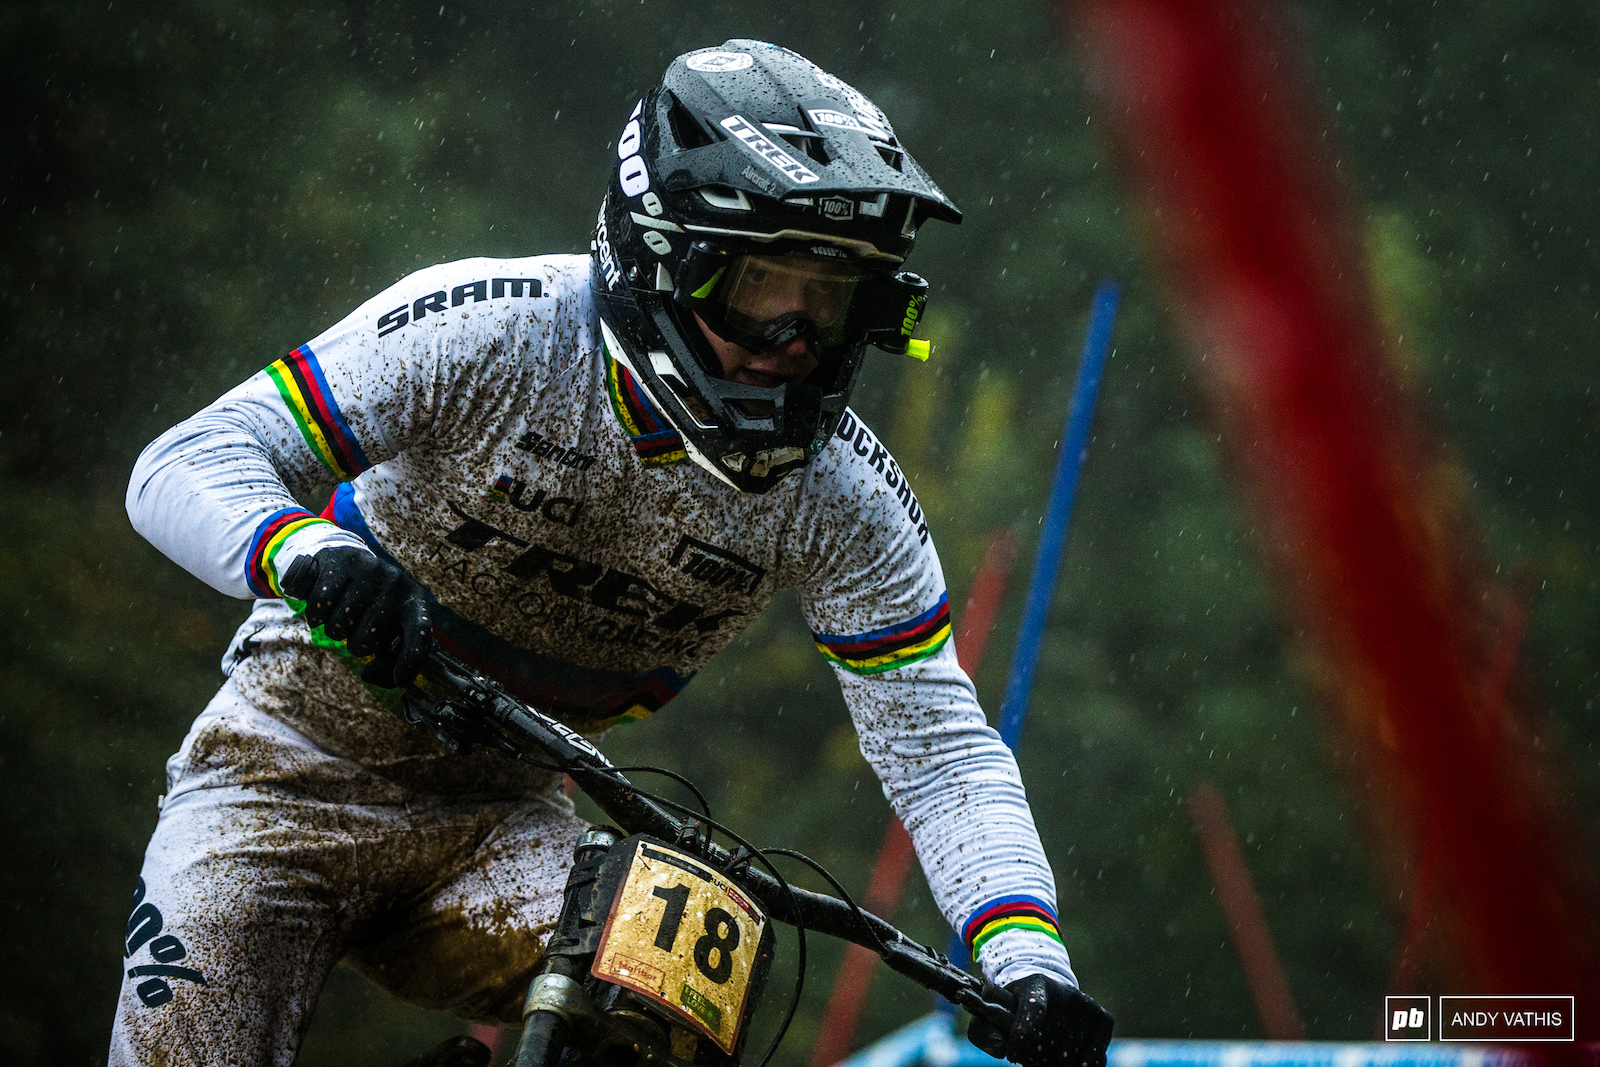 Reece Wilson proved he s no one hit wonder. First in qualies by a sizable margin in the worst possible weather and track conditions. Hats off.